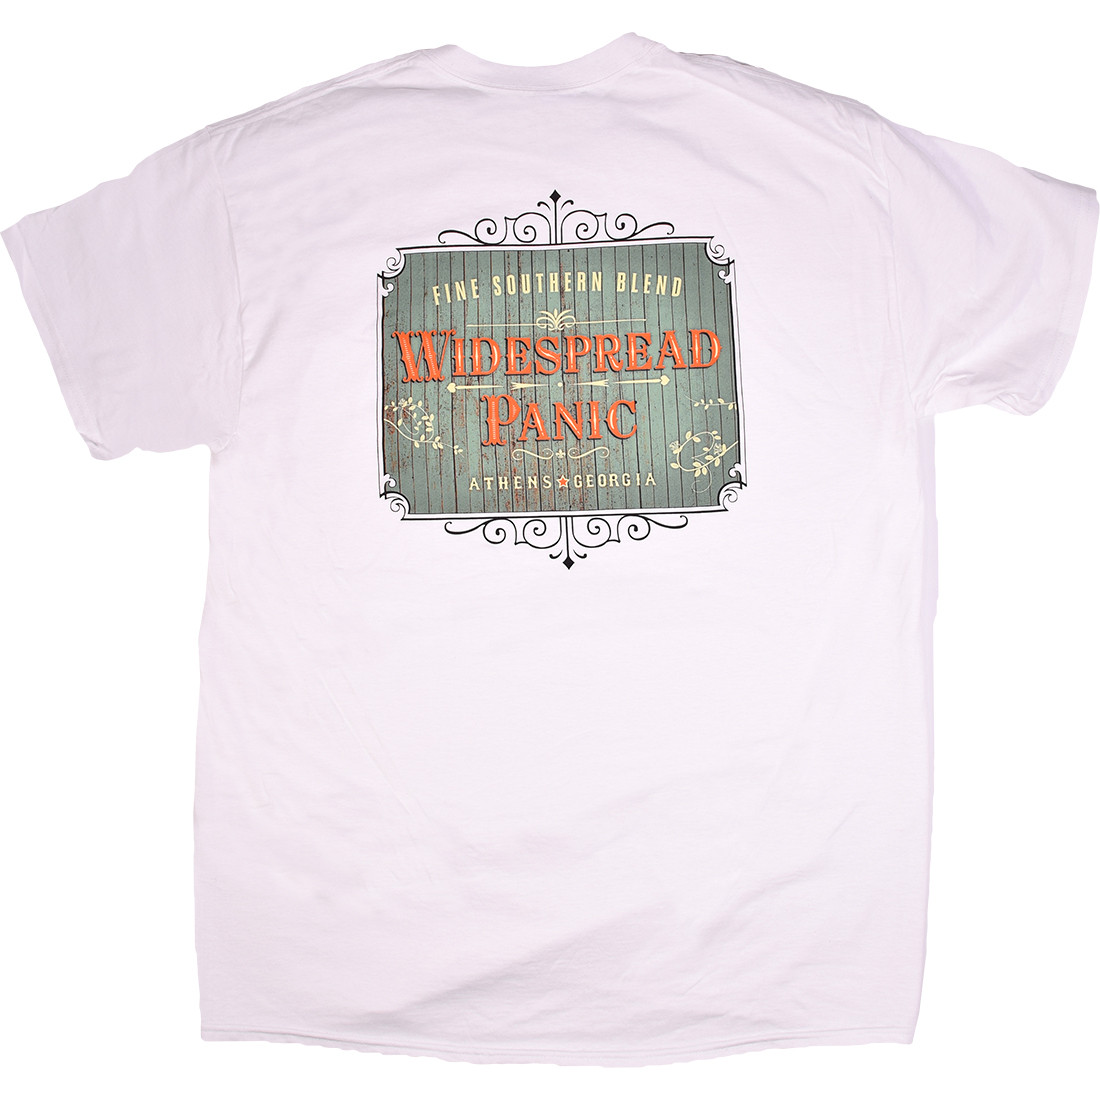 Widespread Panic Southern Blend White T-Shirt